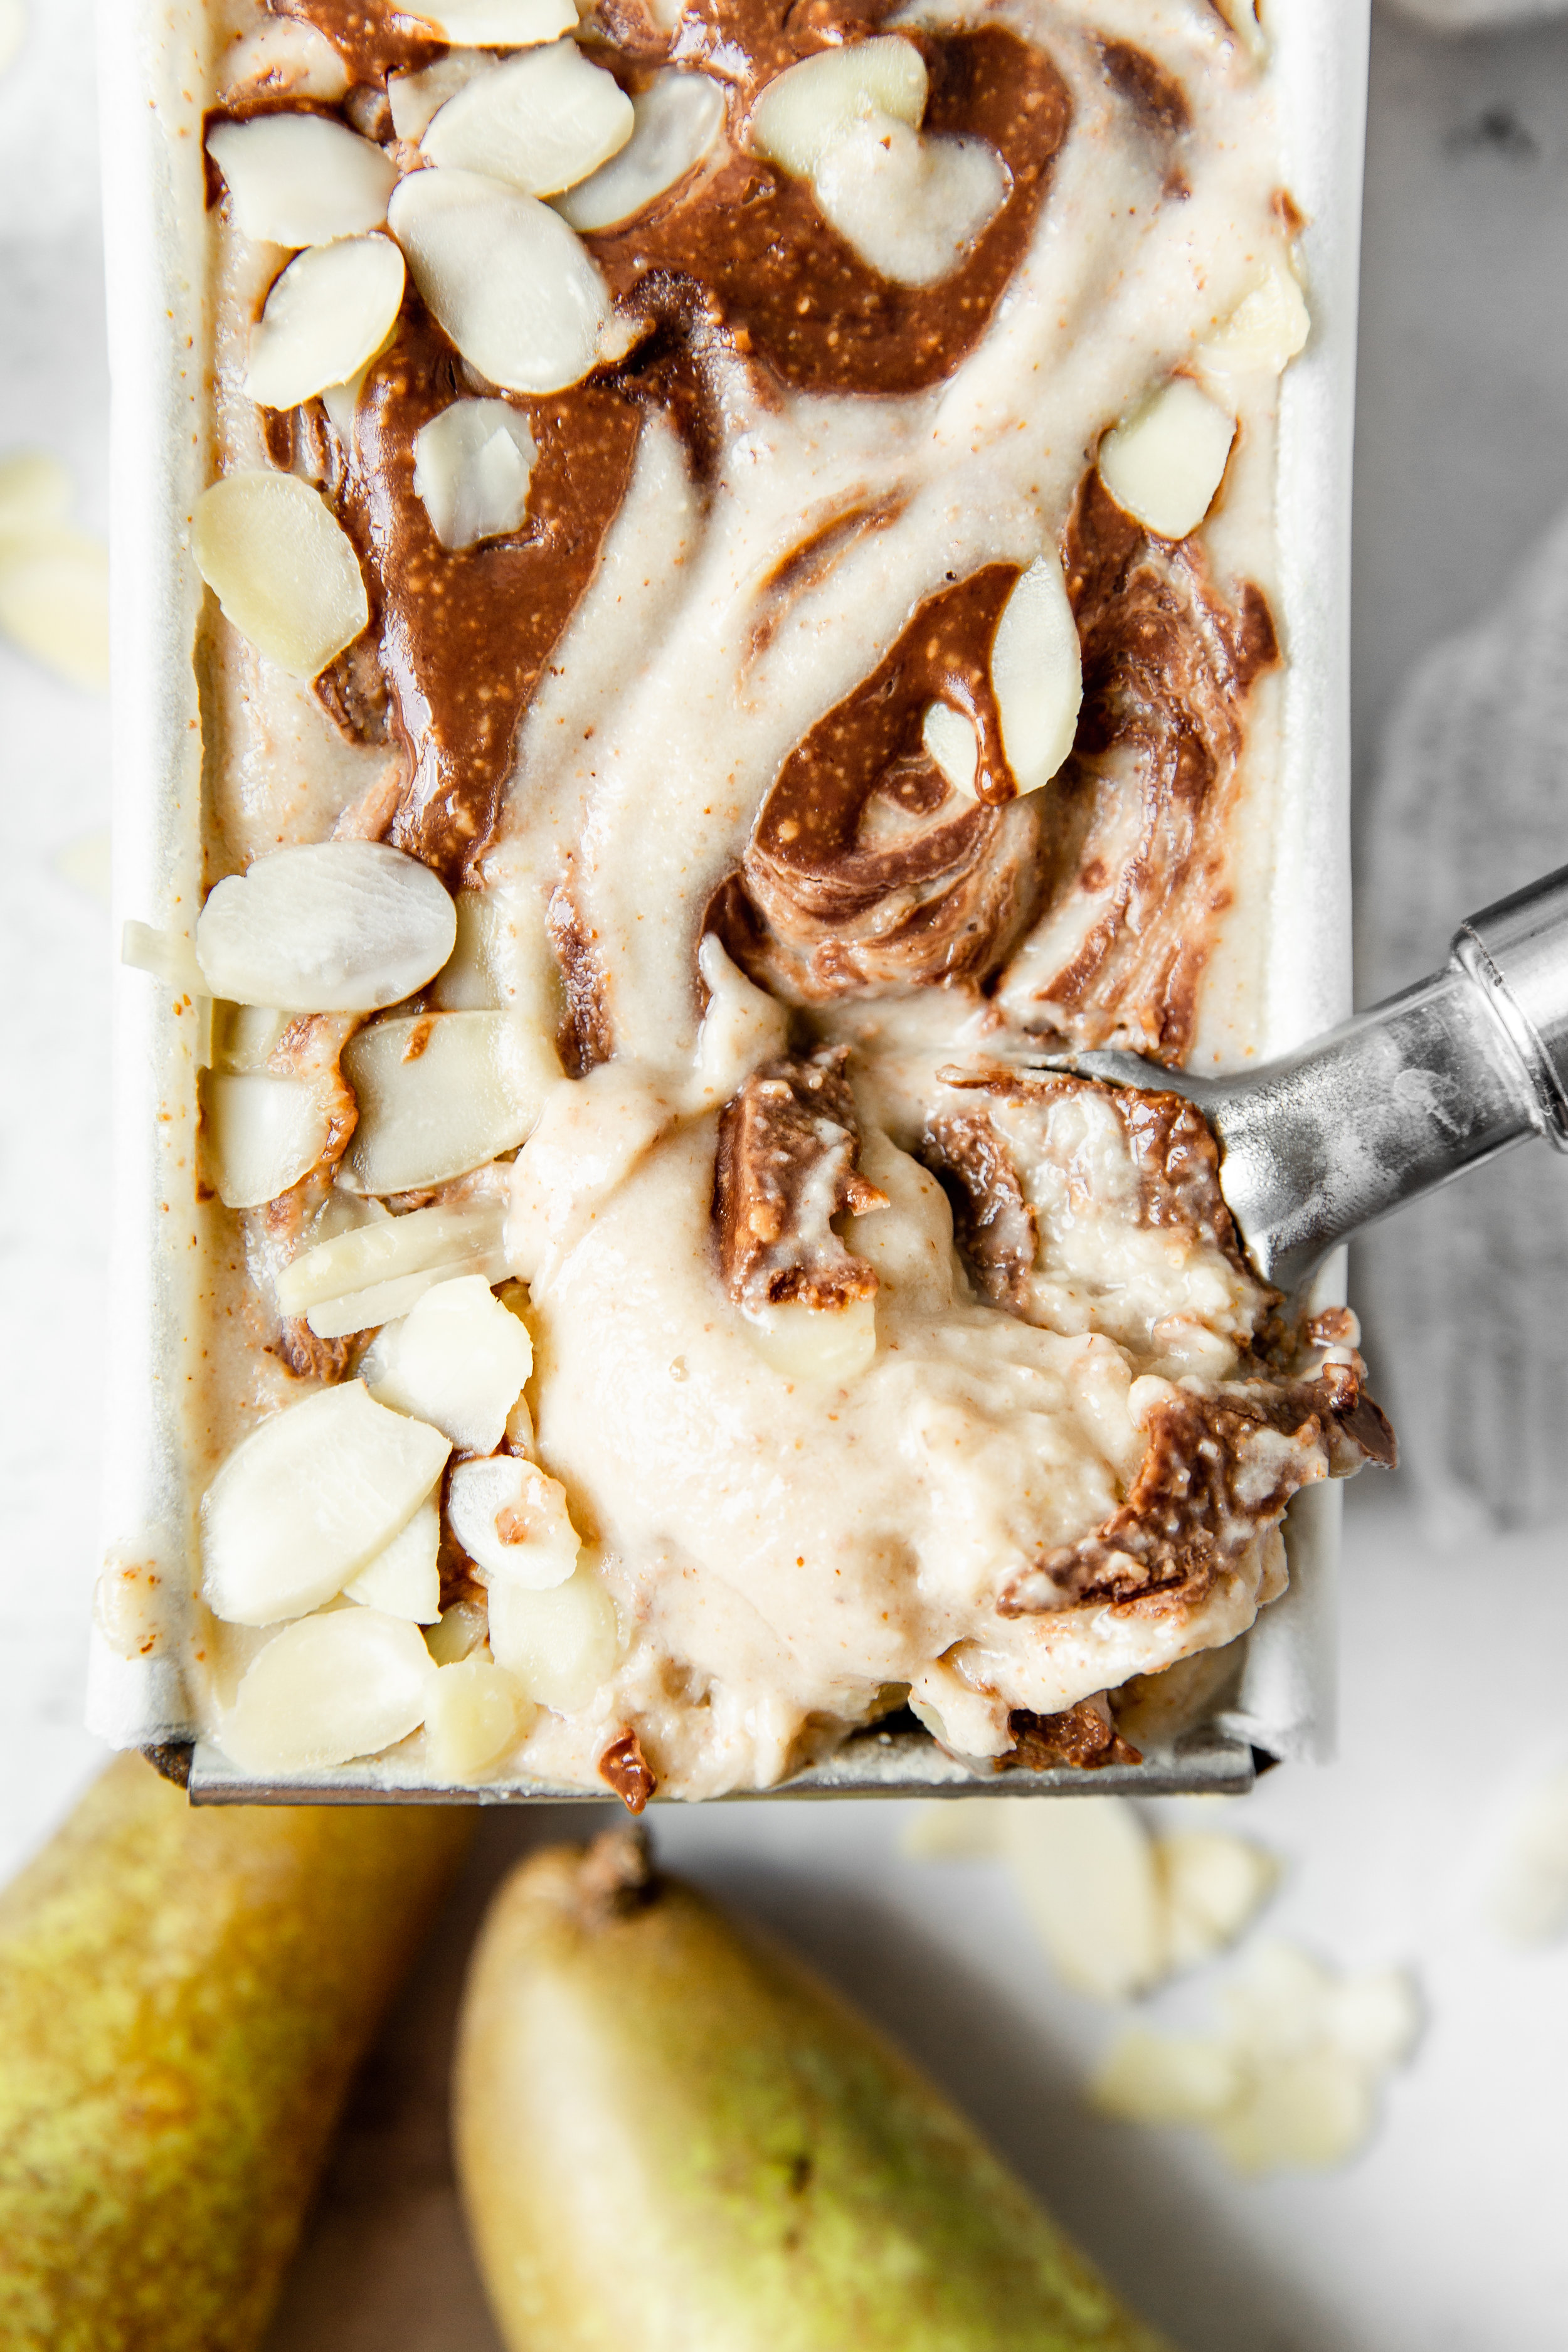 Gonuts-Glace-poire-4.jpg